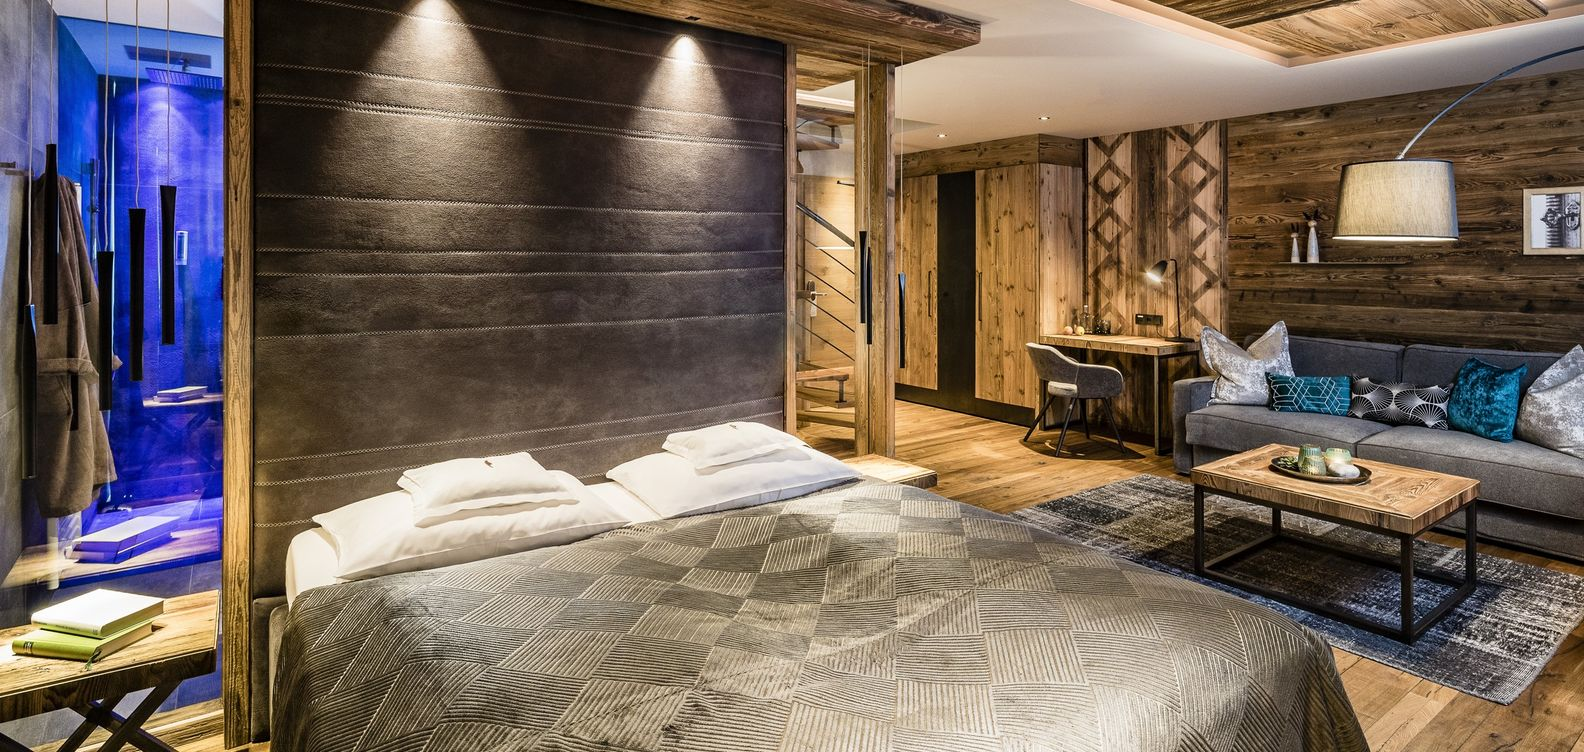 The Mountain Lodge Suite at Hotel Mesnerwirt in South Tyrol.